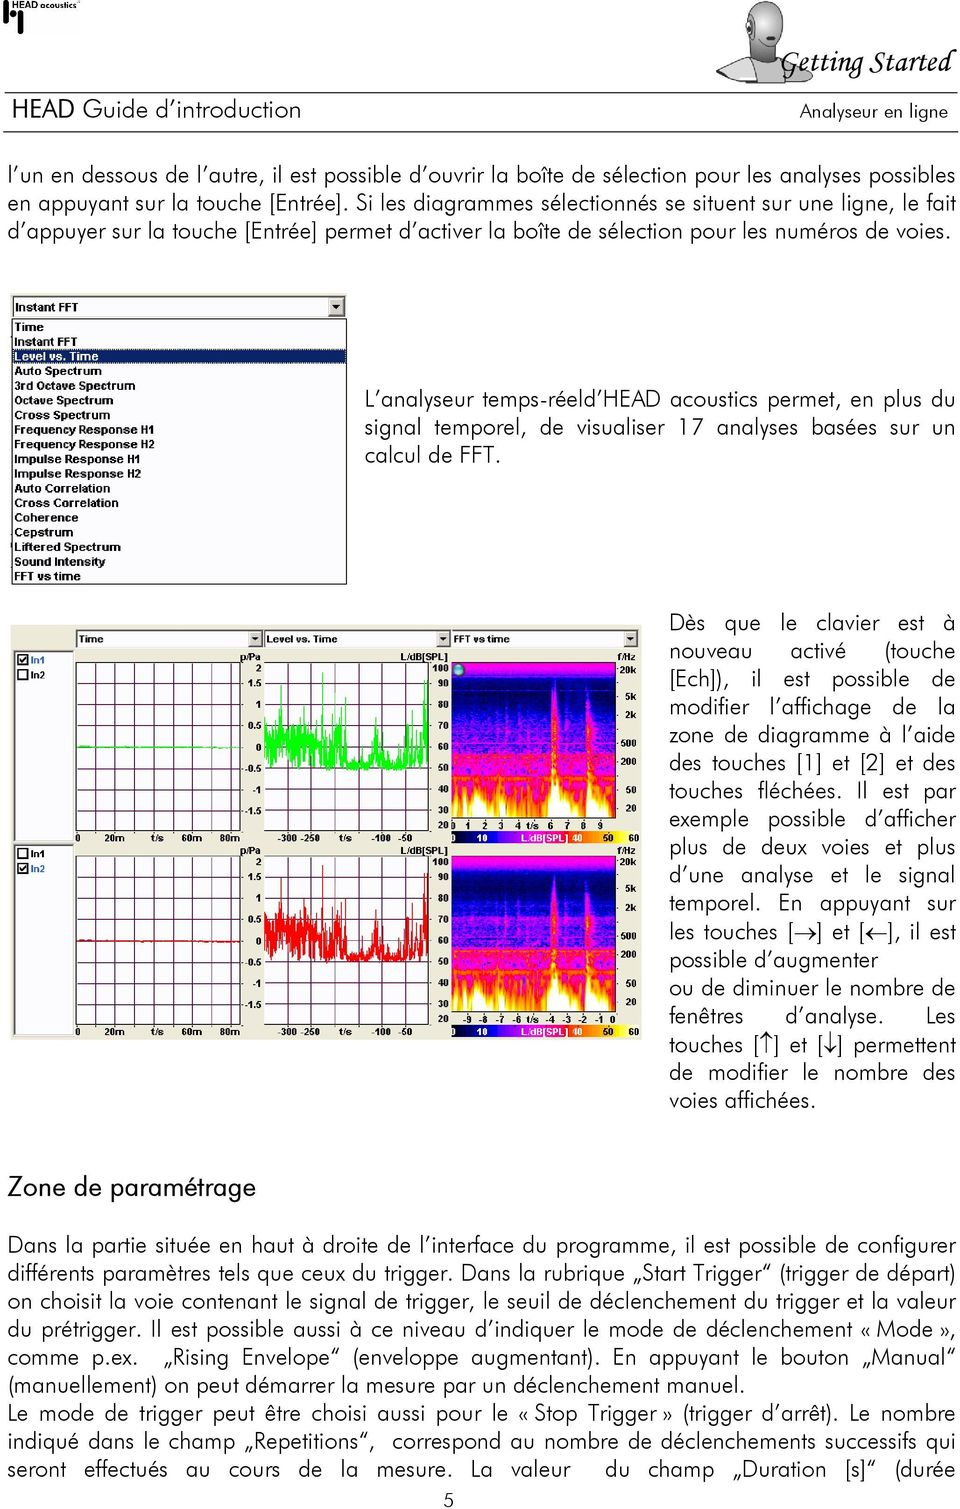 L analyseur temps-réeld HEAD acoustics permet, en plus du signal temporel, de visualiser 17 analyses basées sur un calcul de FFT.